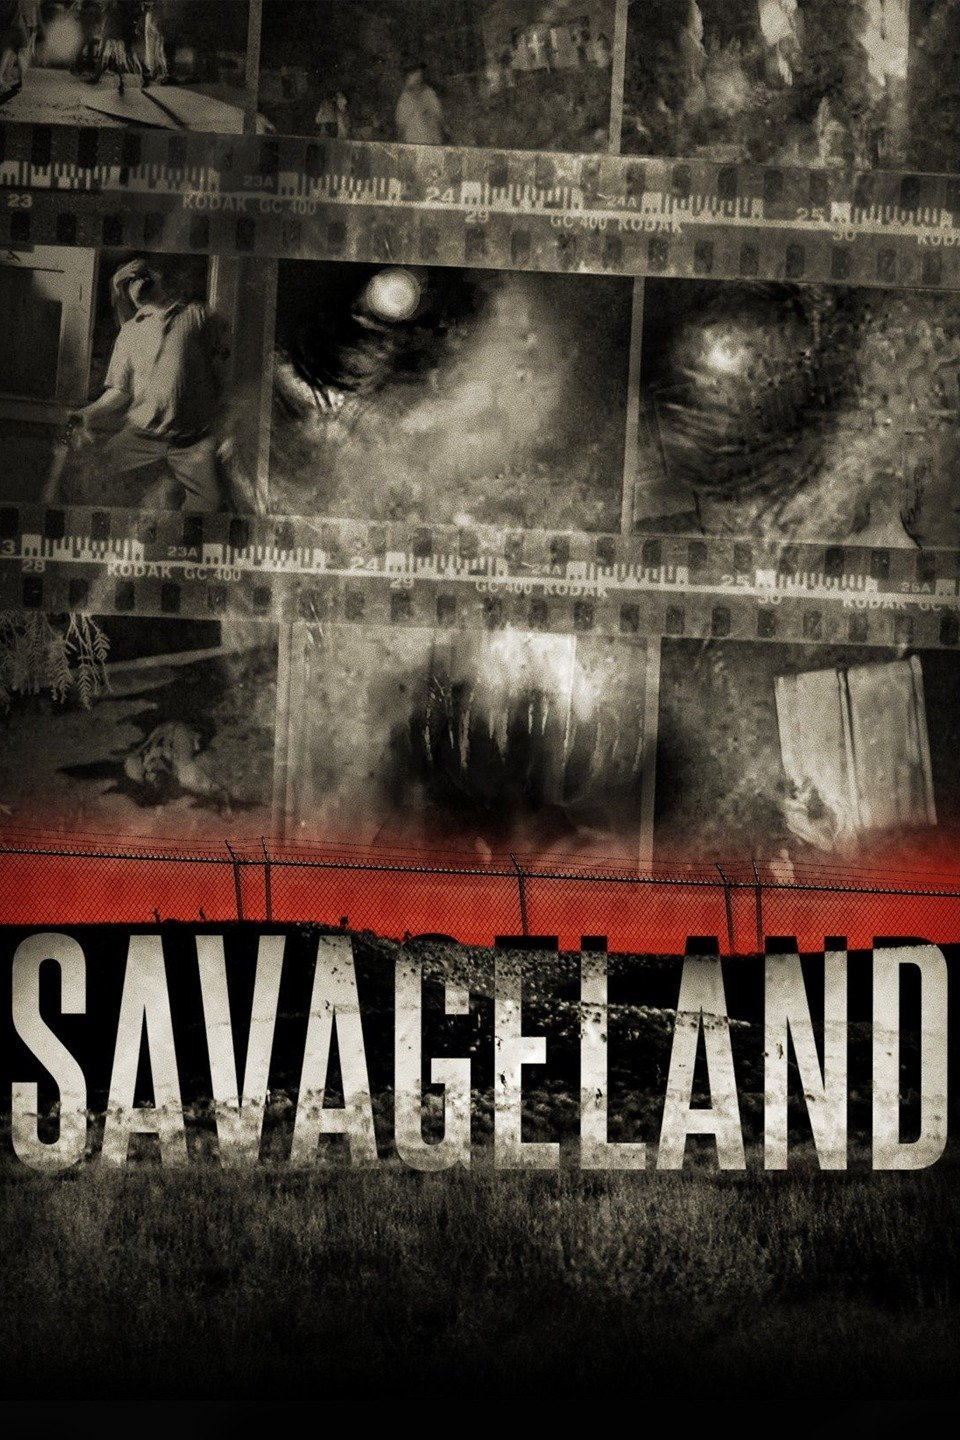 Movie poster for Savageland with black, white, and gray filmstrips depicting ominous images, over a red fenced landscape.